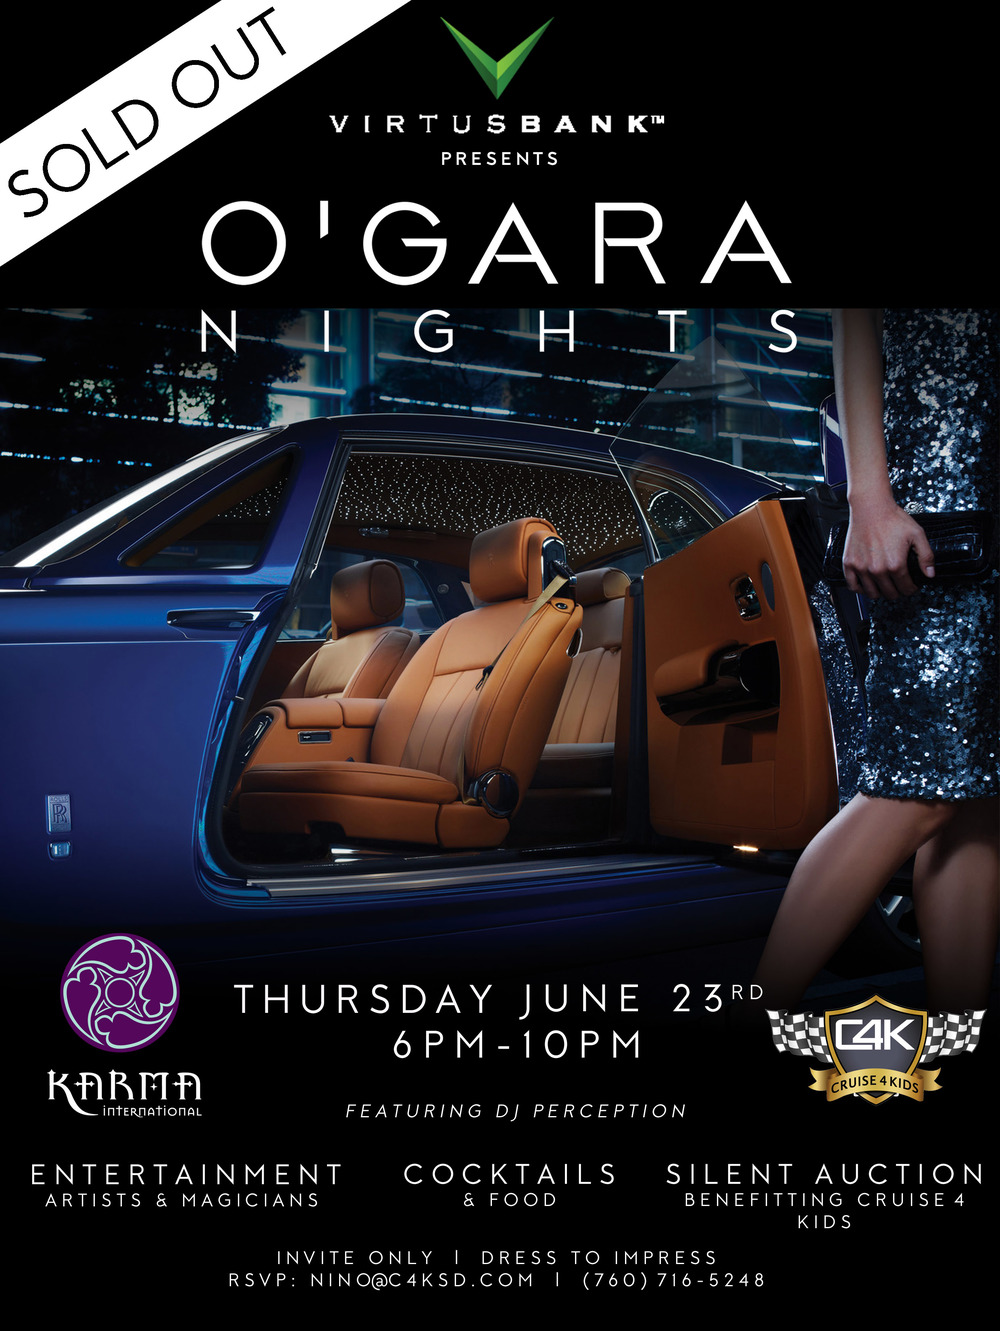 ogara_nights_invitation_cocktail_party_fundraiser